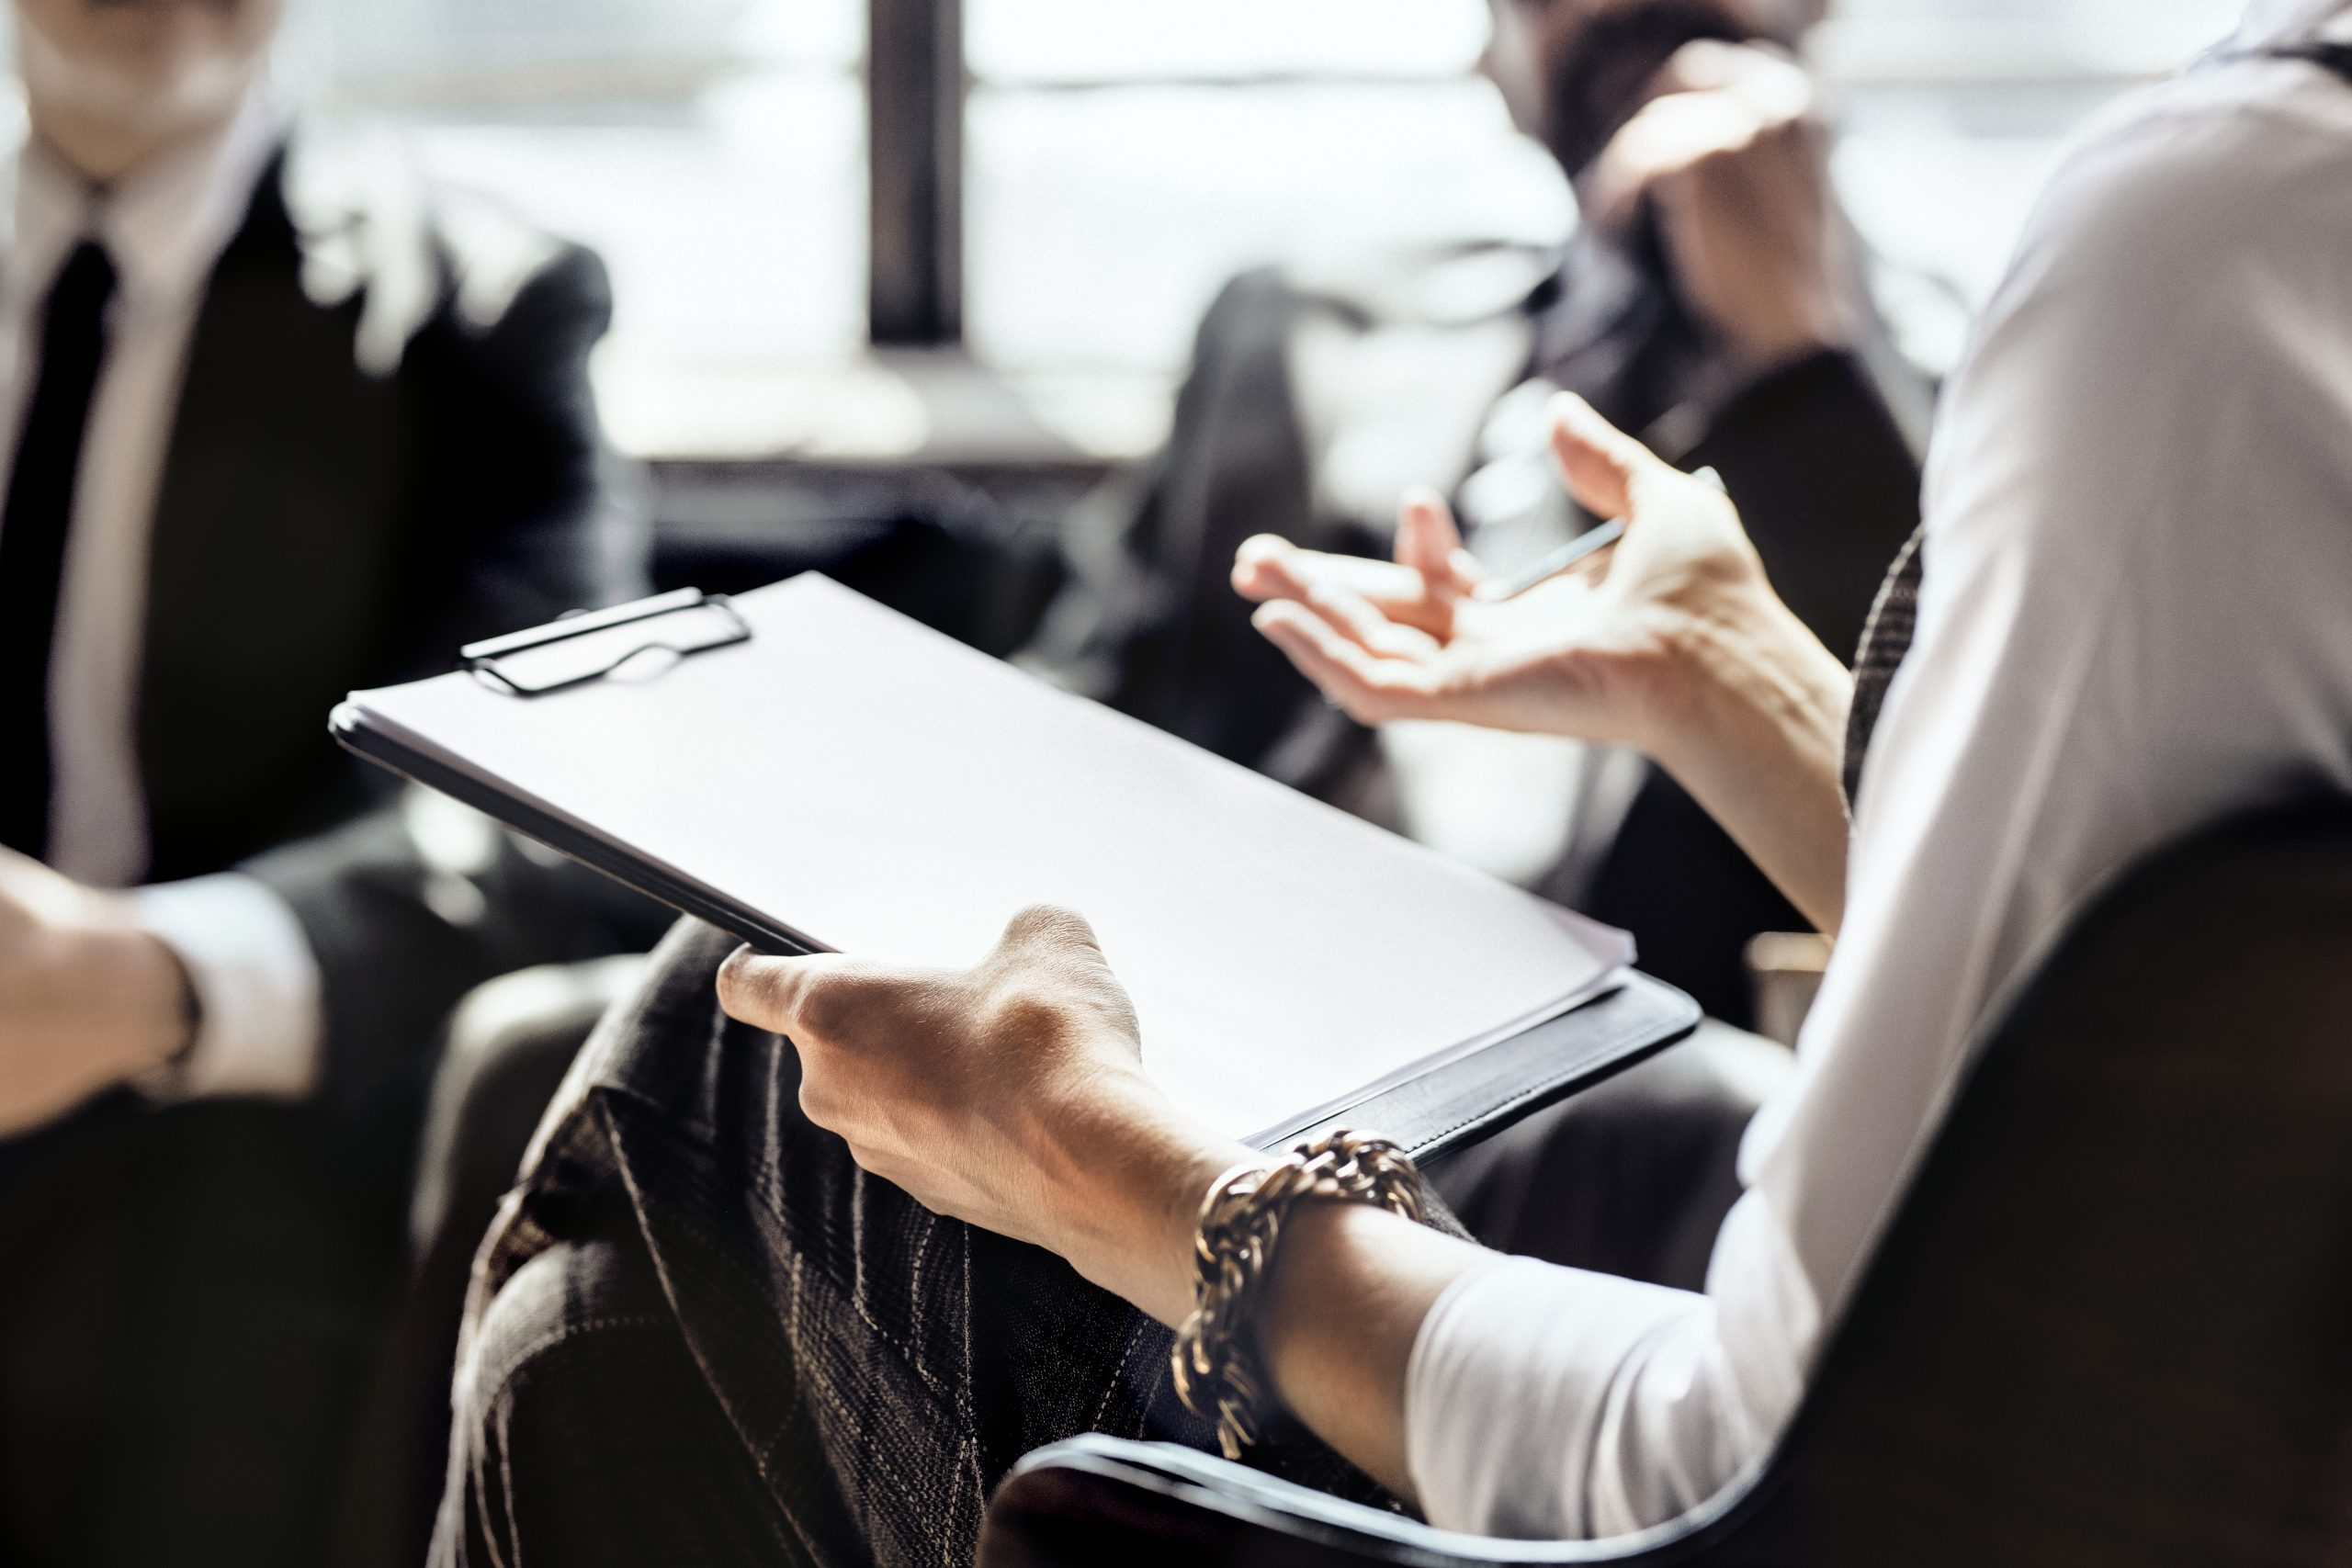 People in a meeting sitting at table, close up of clipboard